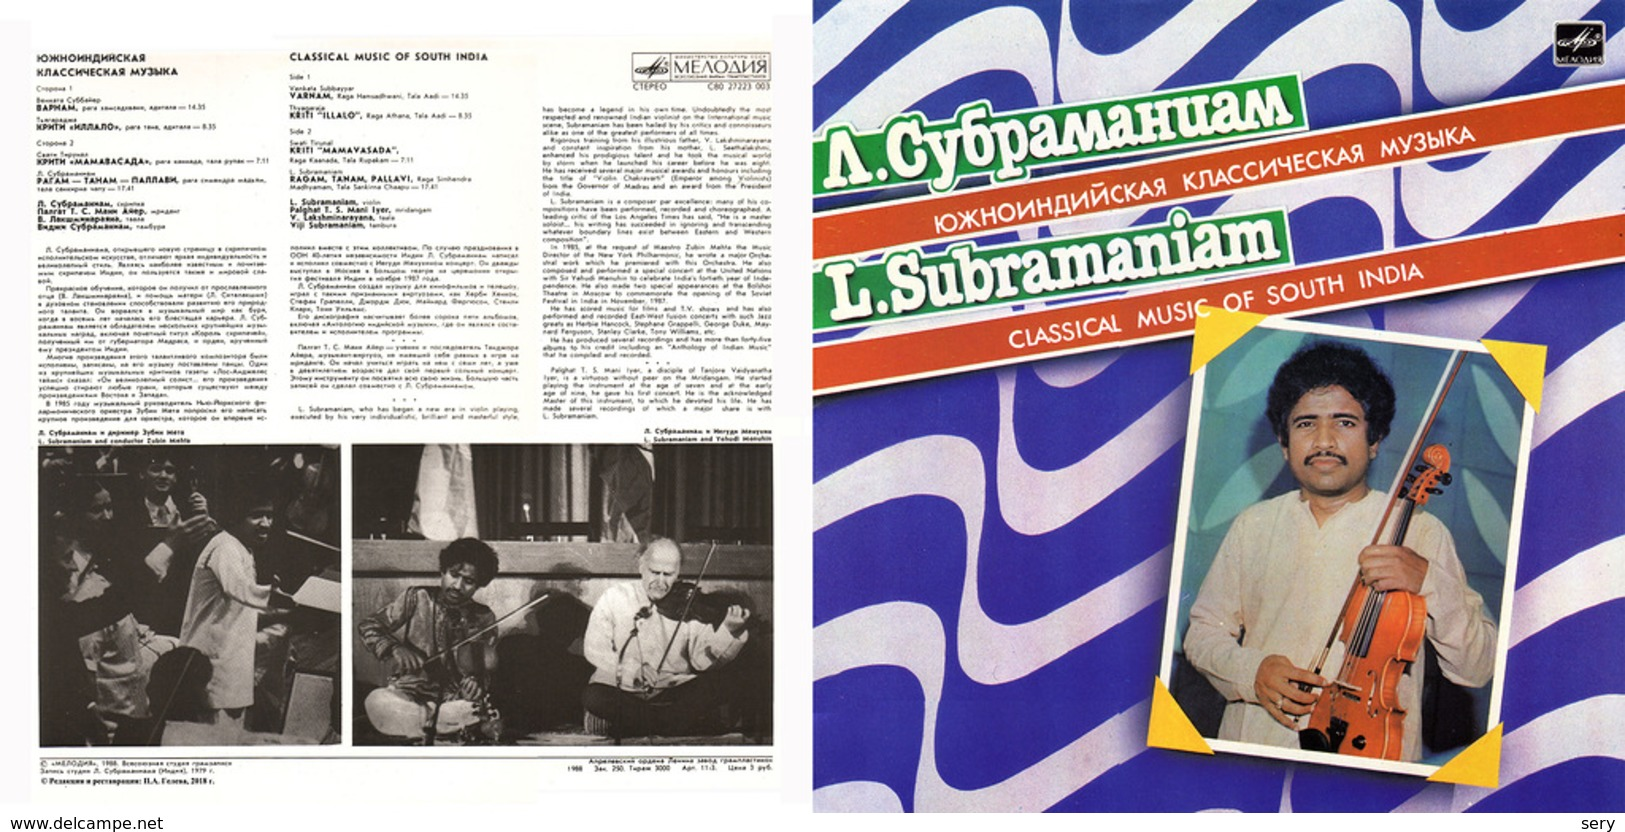 Superlimited Edition CD L.Subramaniam. CLASSICAL MUSIC OF SOUTH INDIA. - Country & Folk